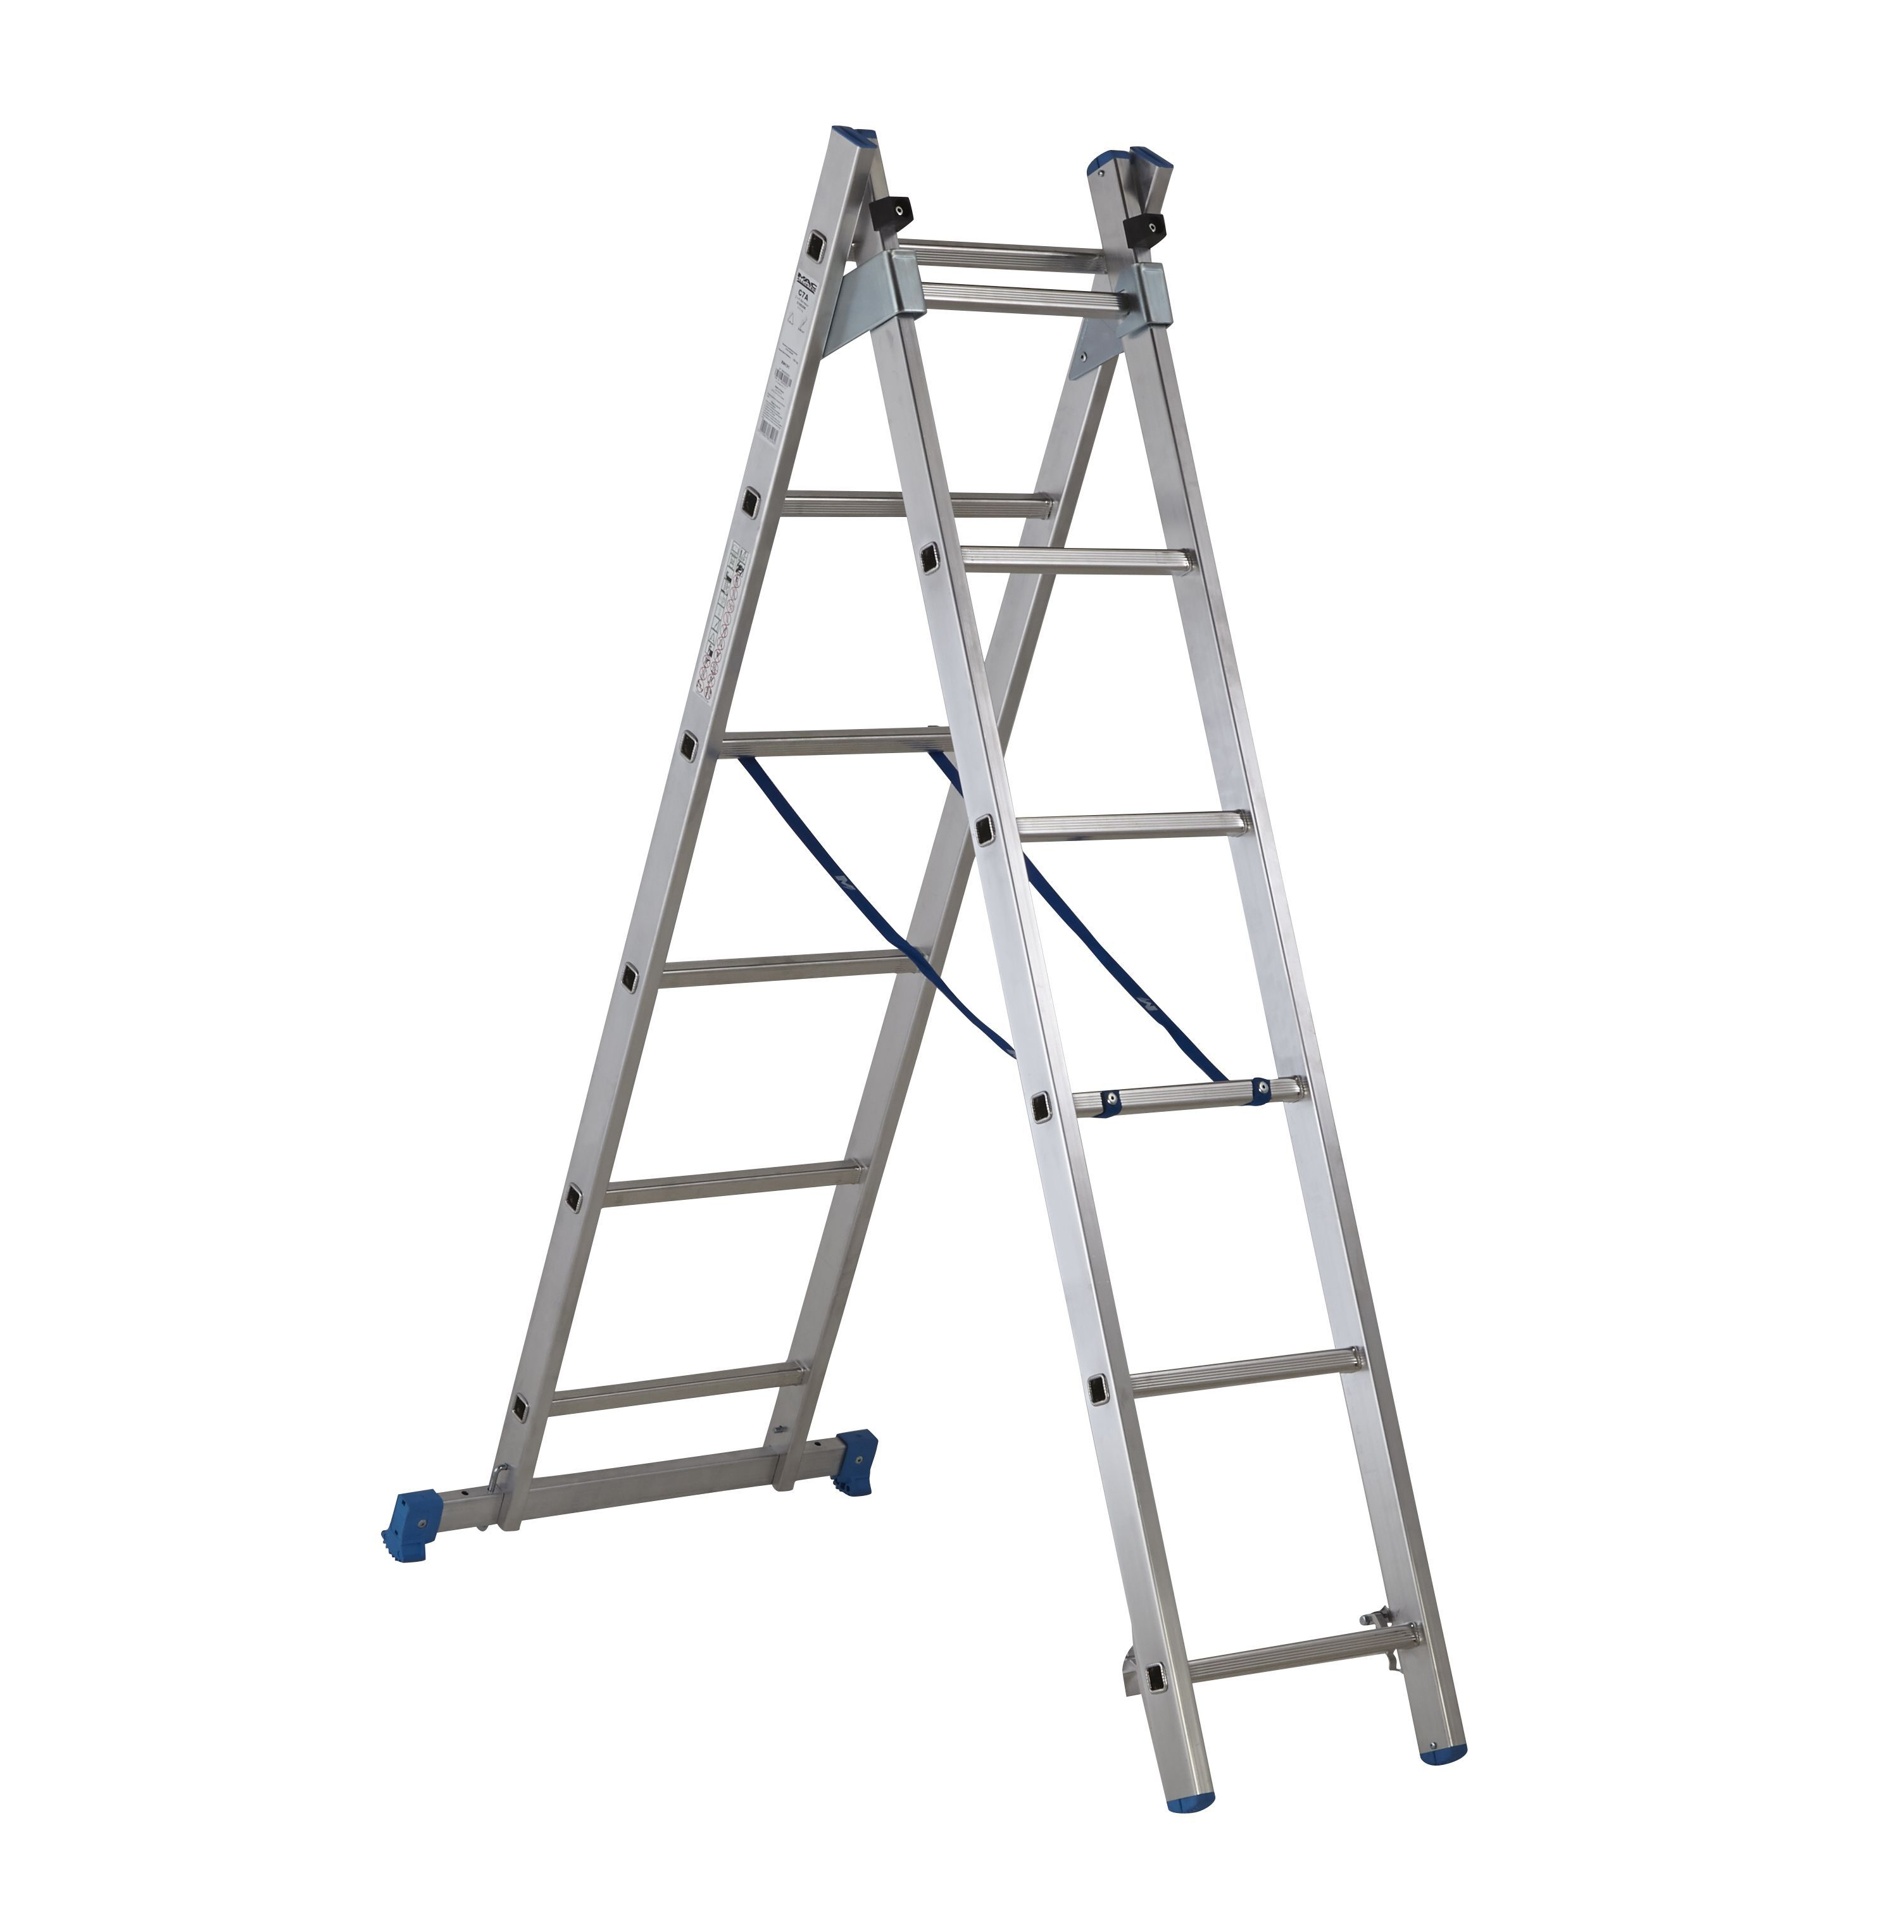 Gentil Mac Allister Trade 12 Tread Combination Ladder With Stair Function |  Departments | DIY At Bu0026Q.